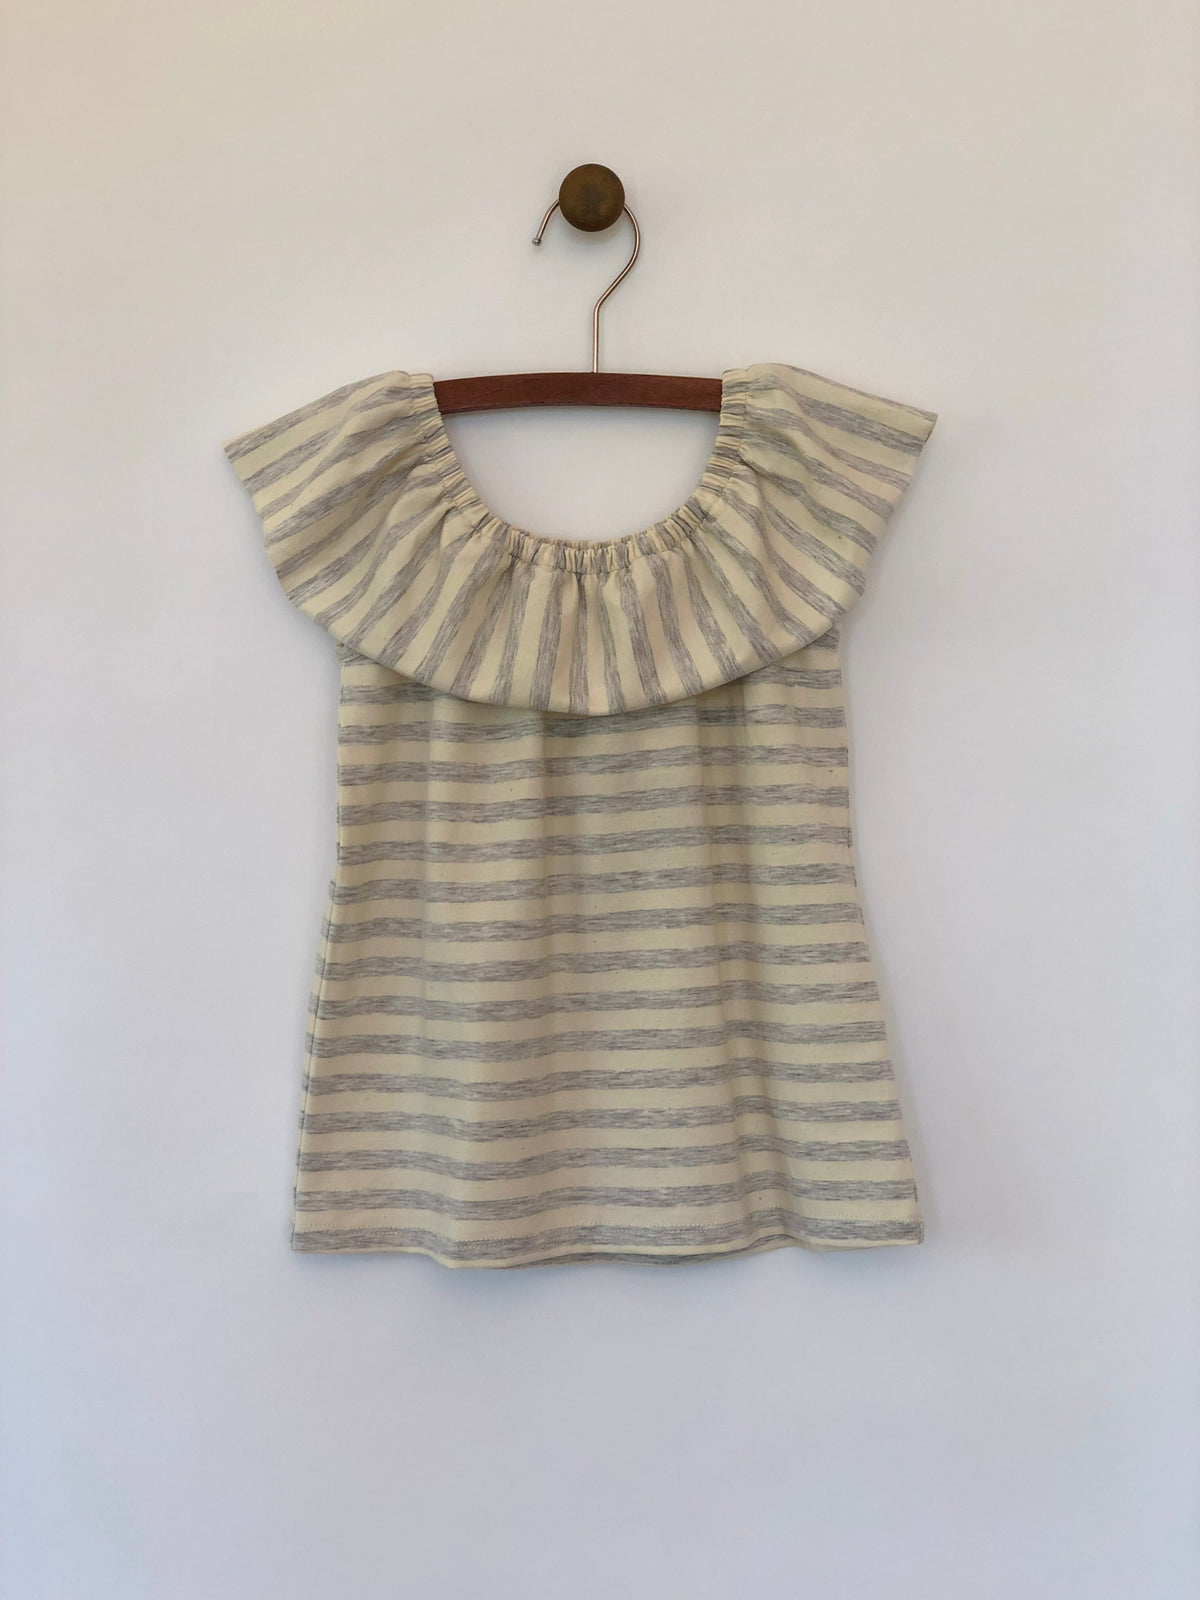 Girls sleeveless top in grey and ivory stripes with round draped collar by Vignette.